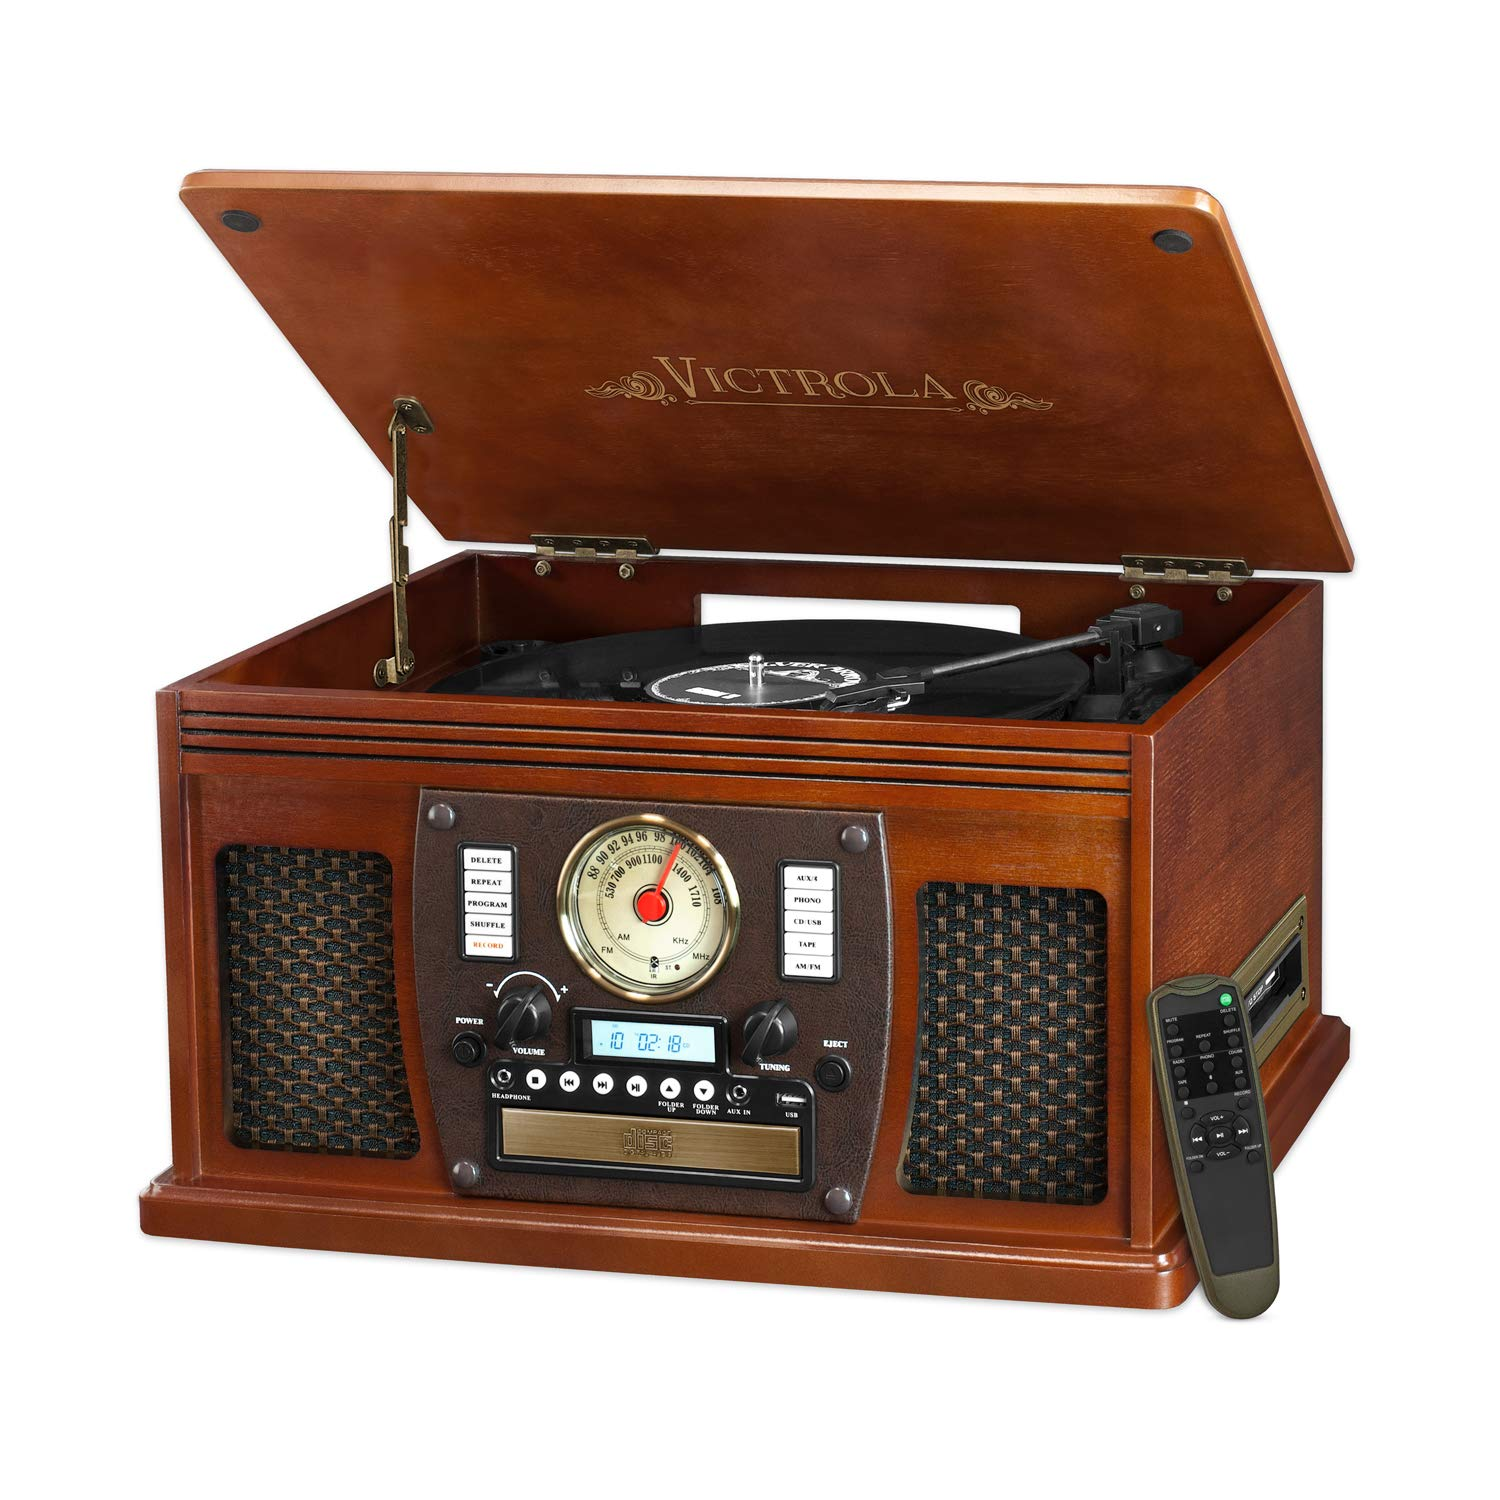 Victrola Nostalgic Aviator Wood 8-in-1 Turntable Review